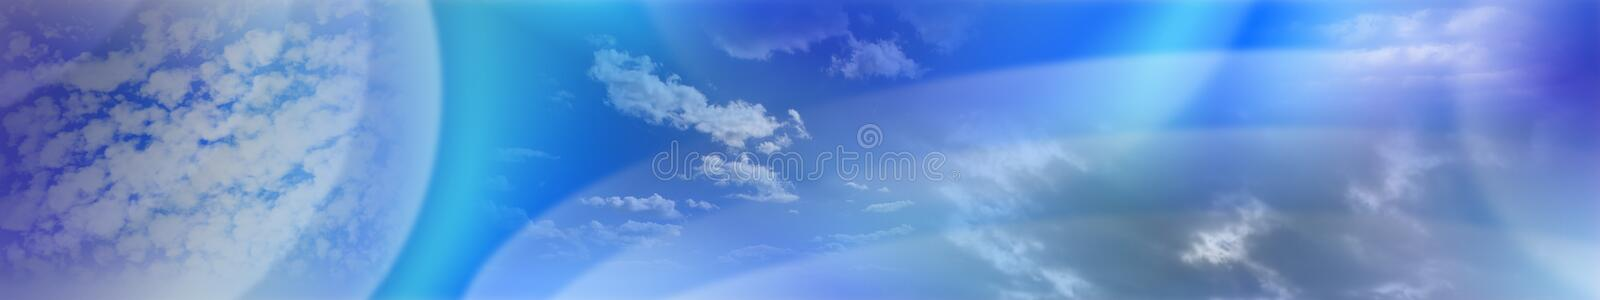 Soft Cloudy Banner, Bitmap royalty free illustration